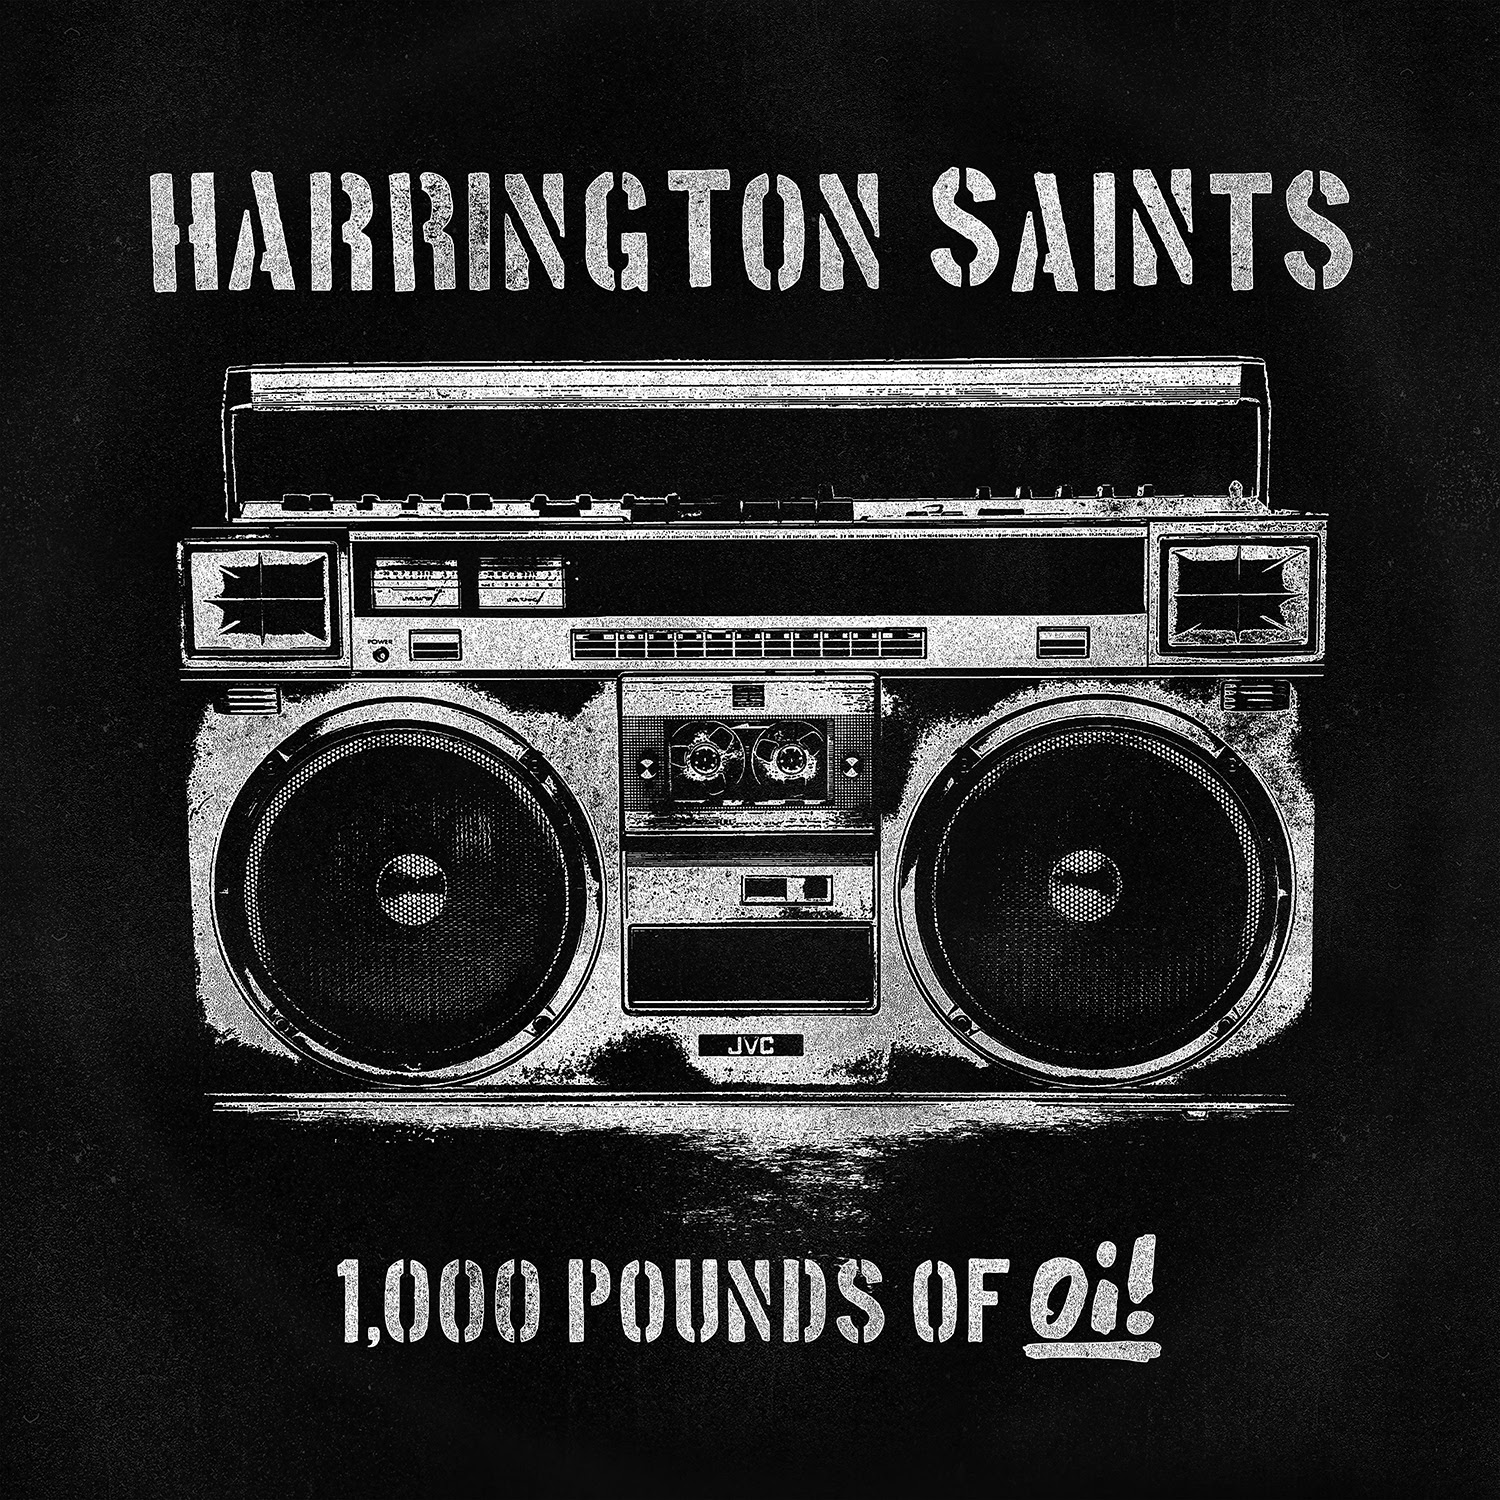 Harrington Saints